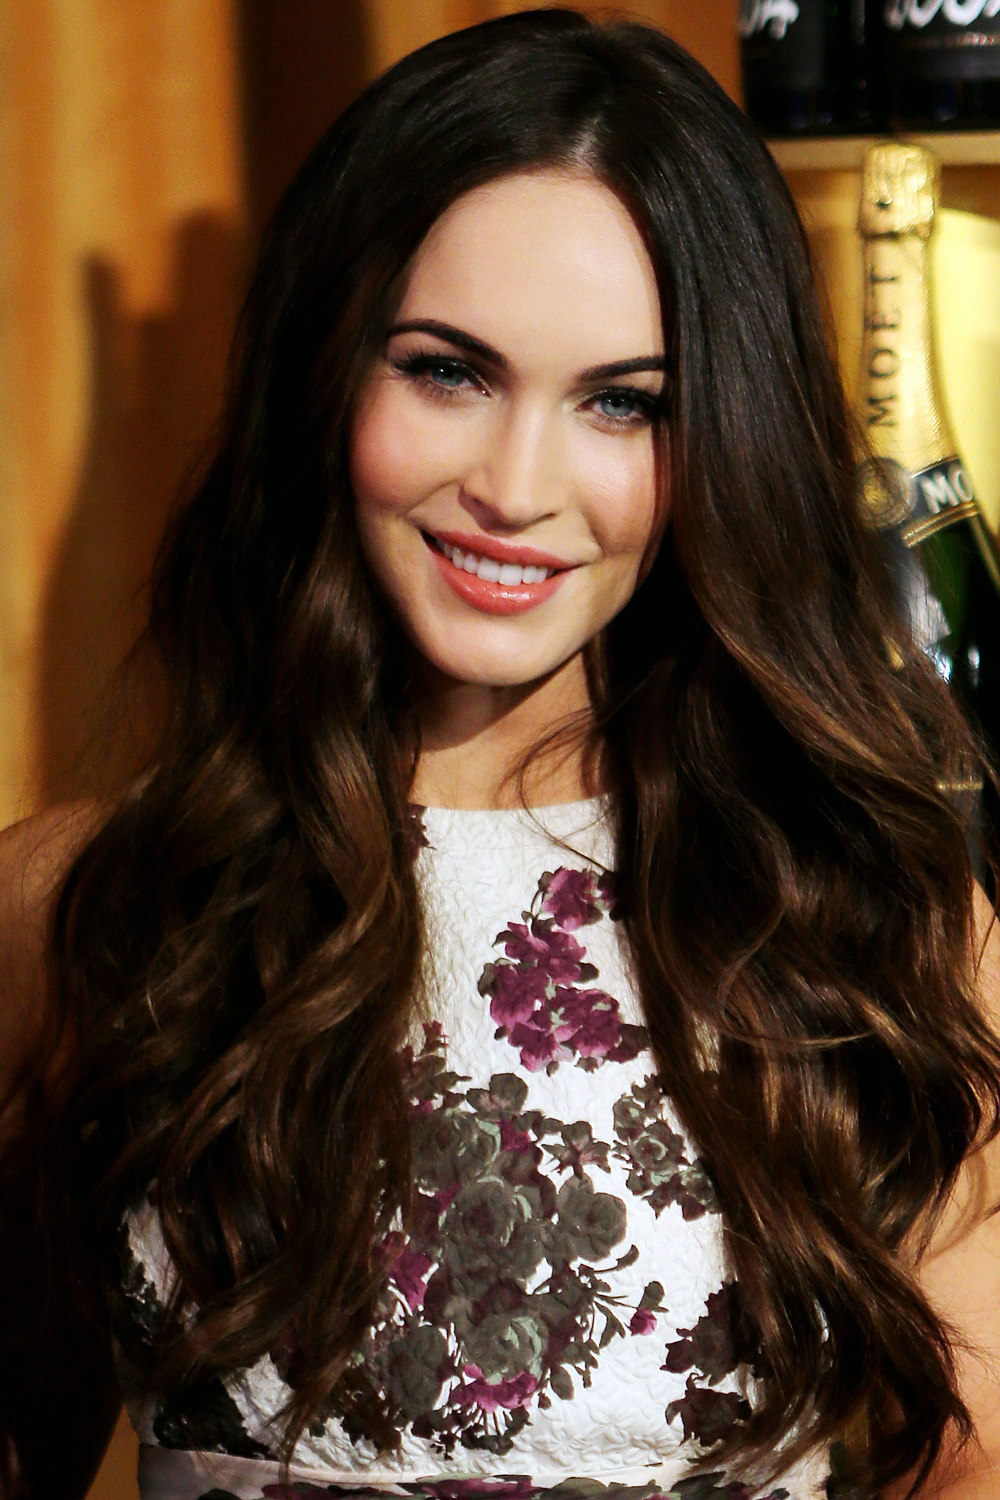 women 39 s hairstyle ideas megan fox page 4 hair. Black Bedroom Furniture Sets. Home Design Ideas